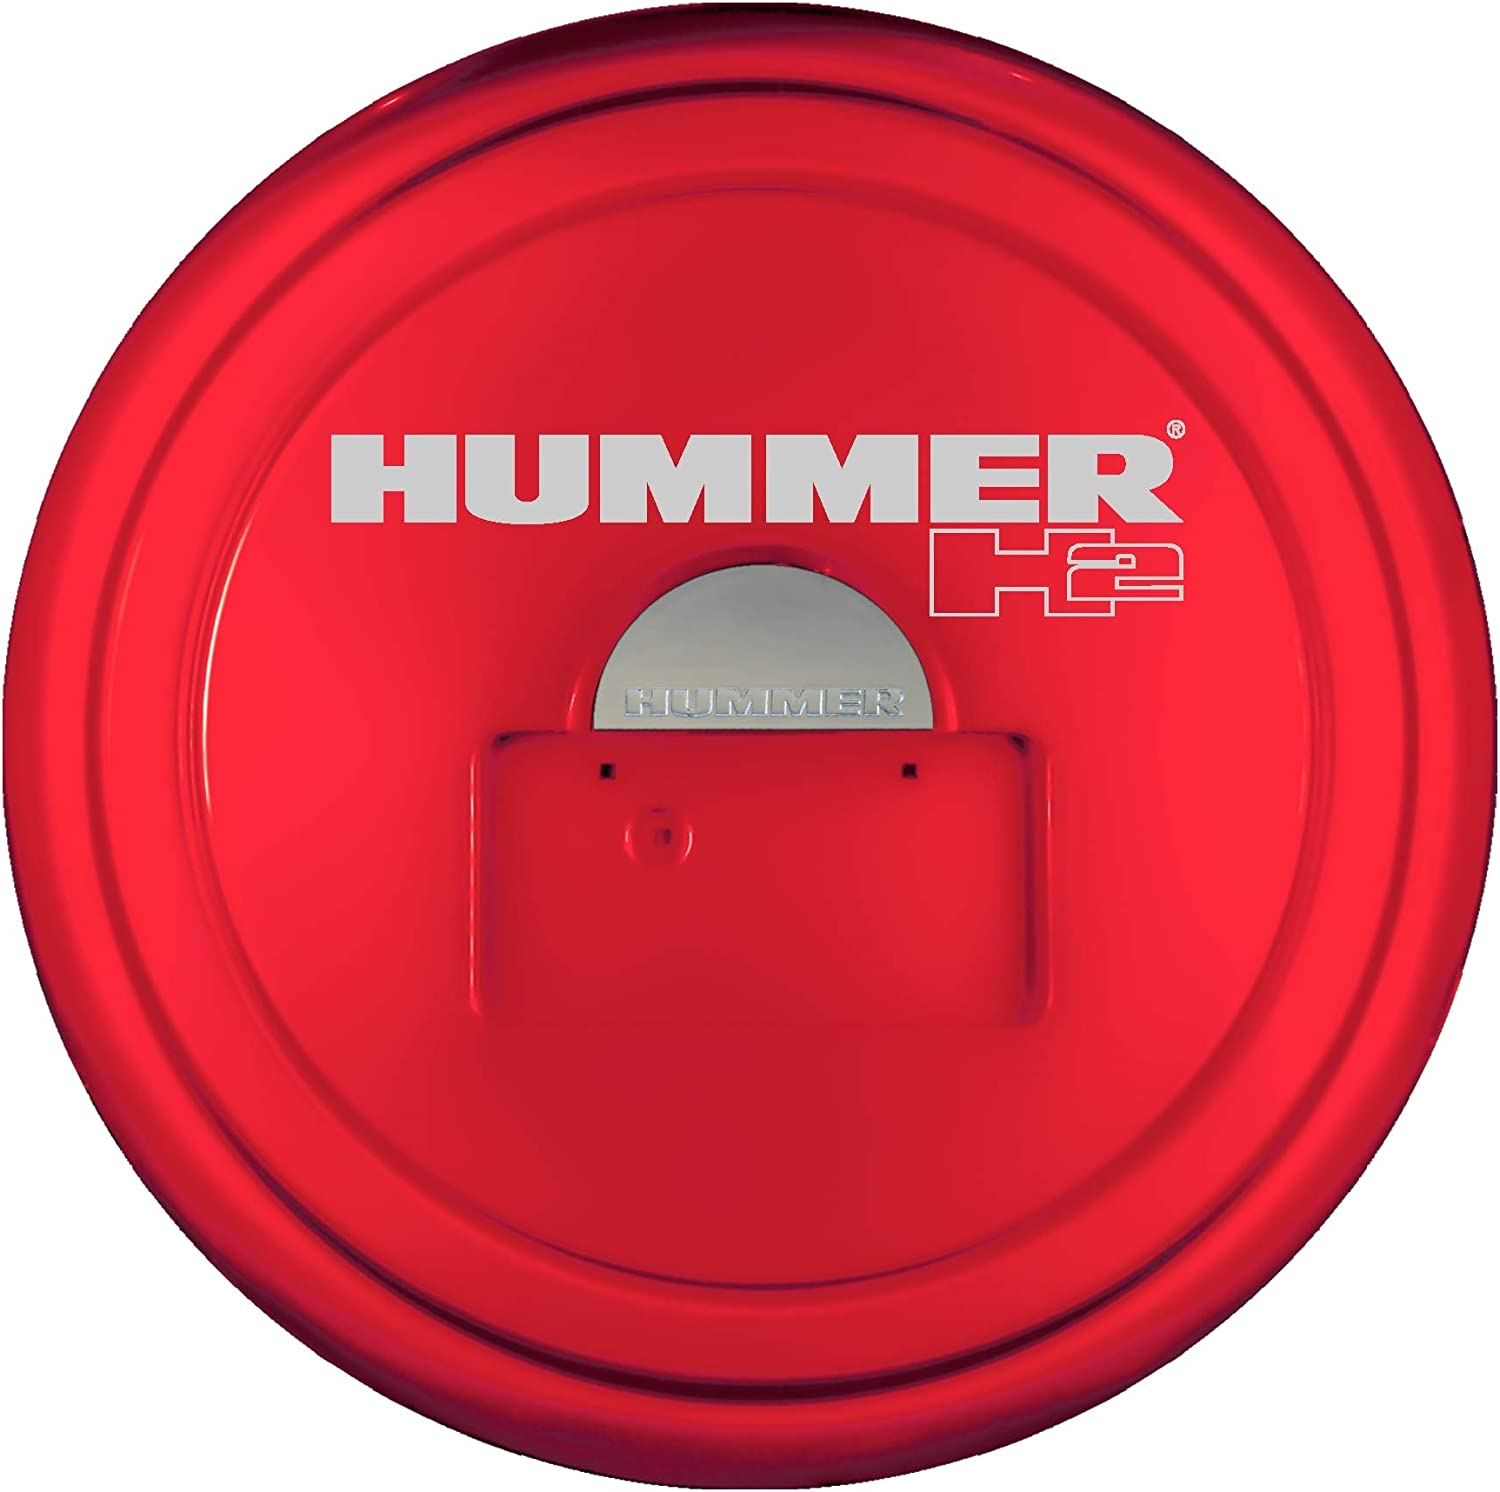 Boomerang Hummer H2 Painted Plastic Face /& Black Powder Coated Steel Ring - Hummer H2 Logo 05-10 - MasterSeries Hard Tire Cover - All Terrain Blue